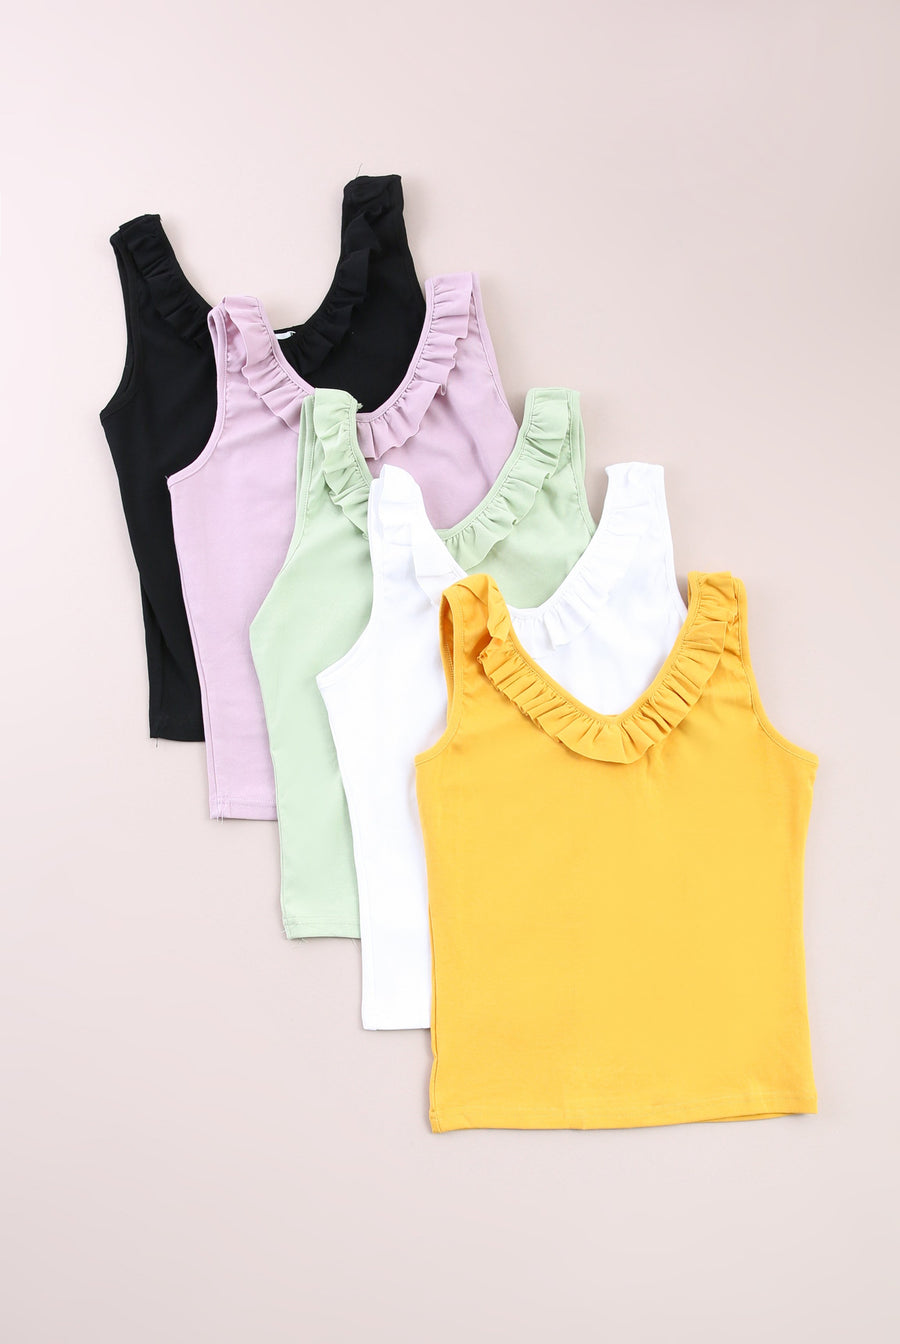 Strap Top 6870 Tops